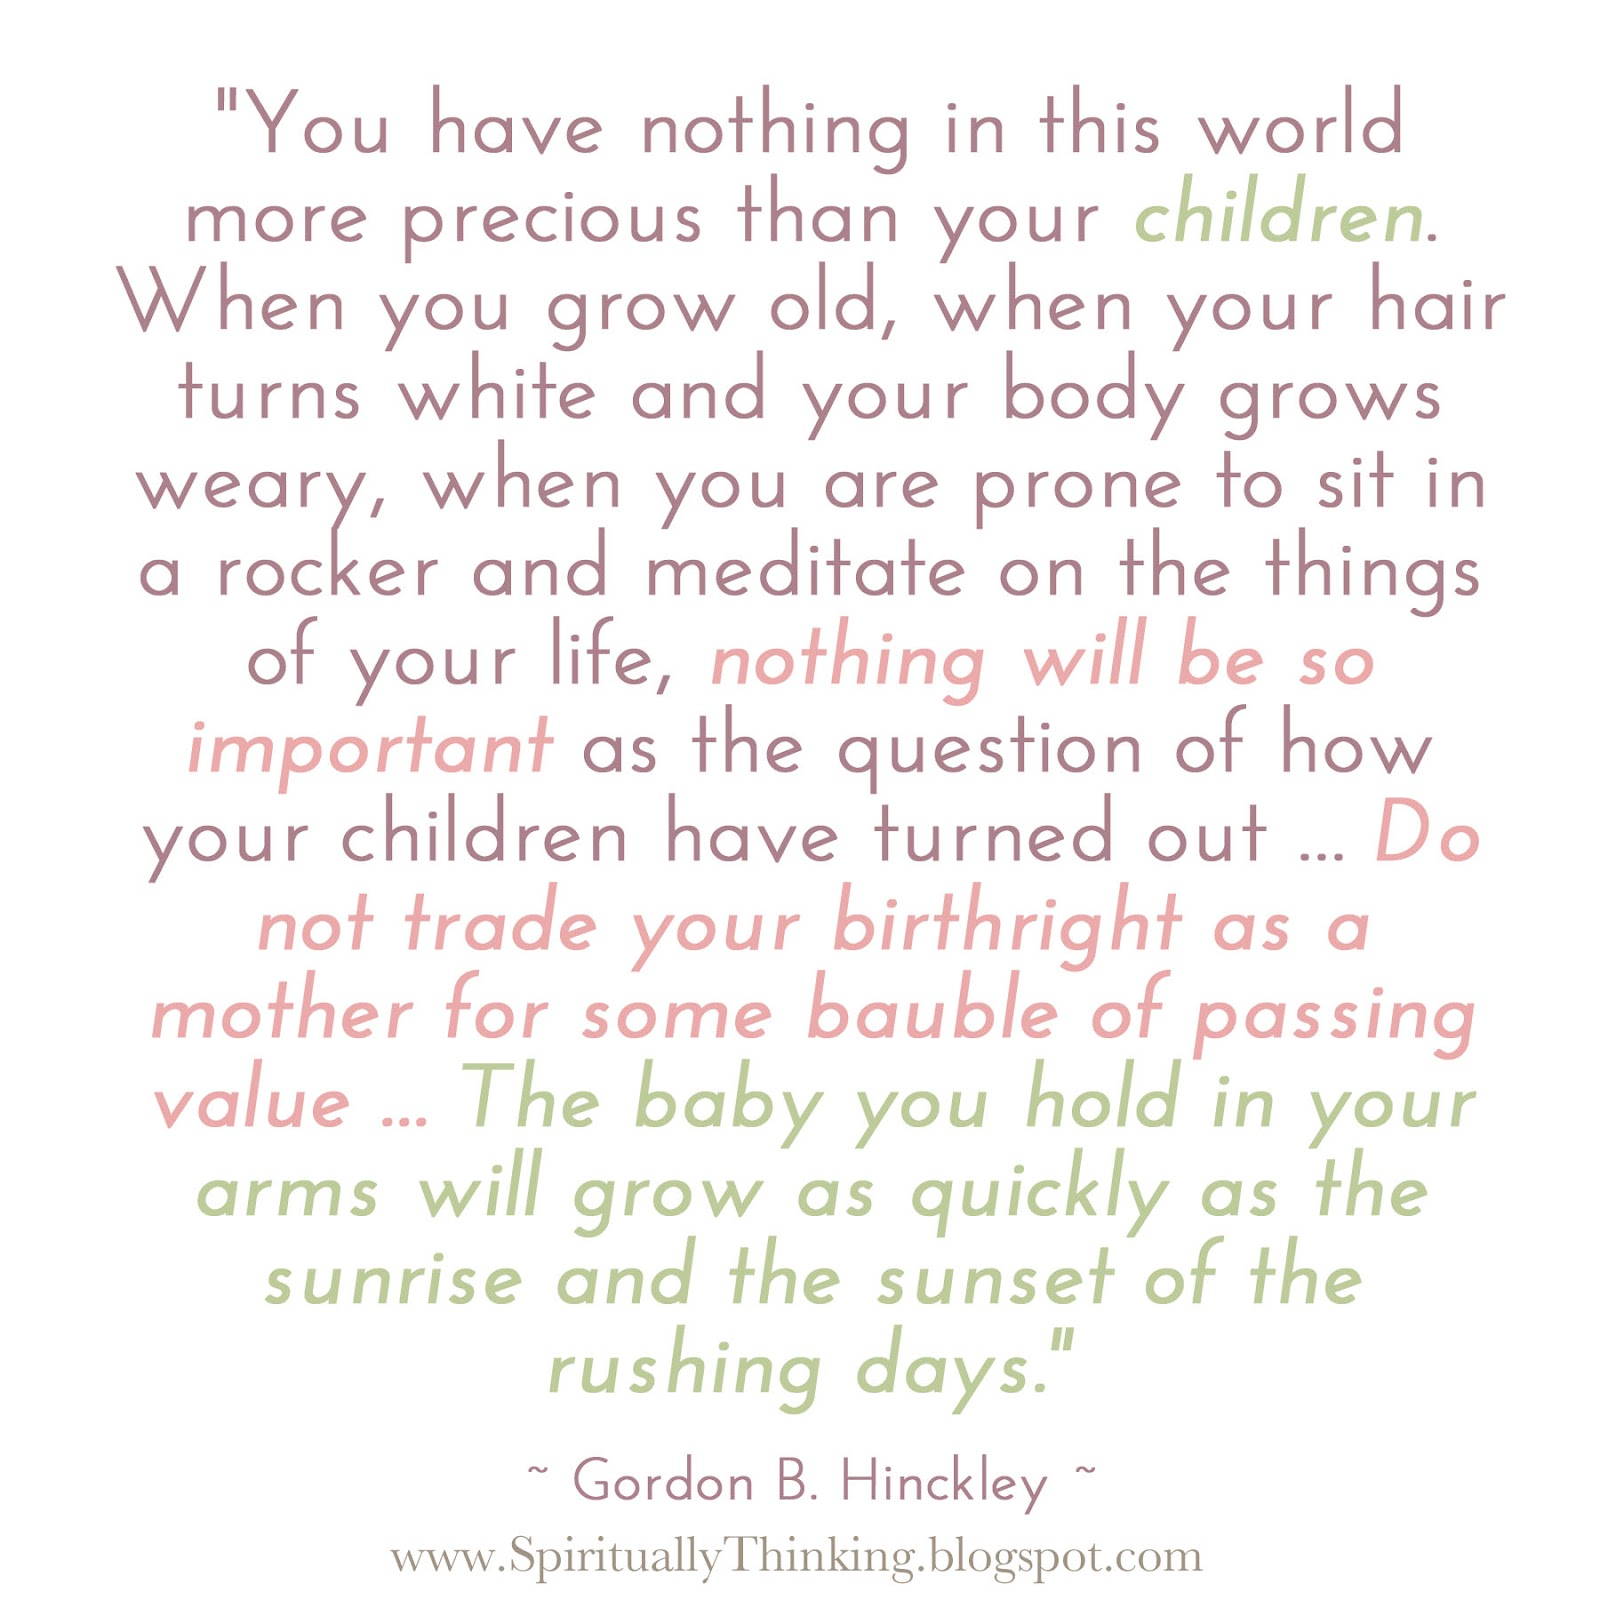 Gordon B Hinckley Quotes About Love : and Spiritually Speaking: Children, Nothing So Important